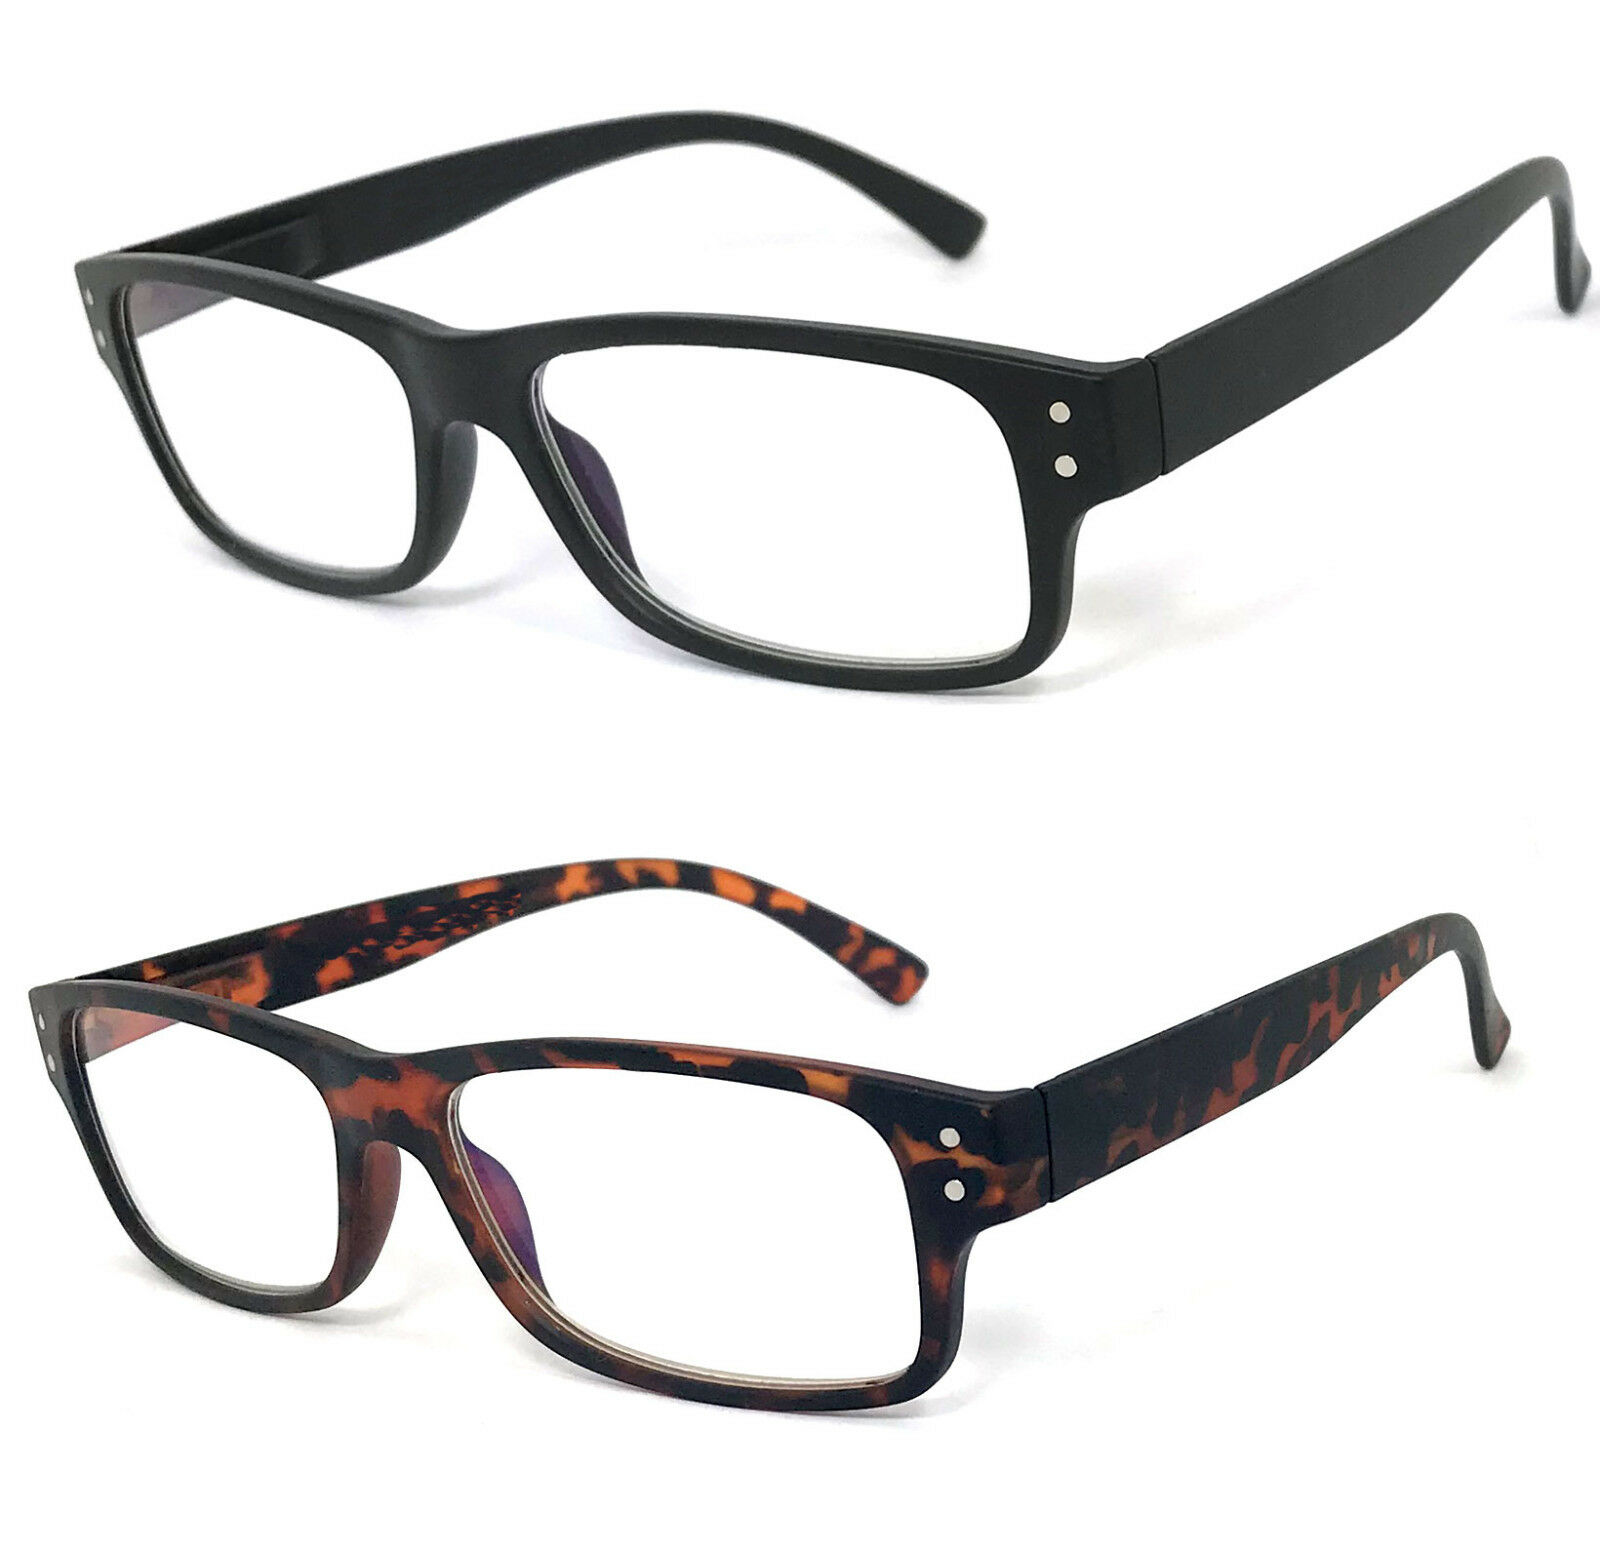 050aca06890c Details about 1 or 2 Pair Pro Computer Reading Glasses Anti Reflective  Block Blue Ray UV400